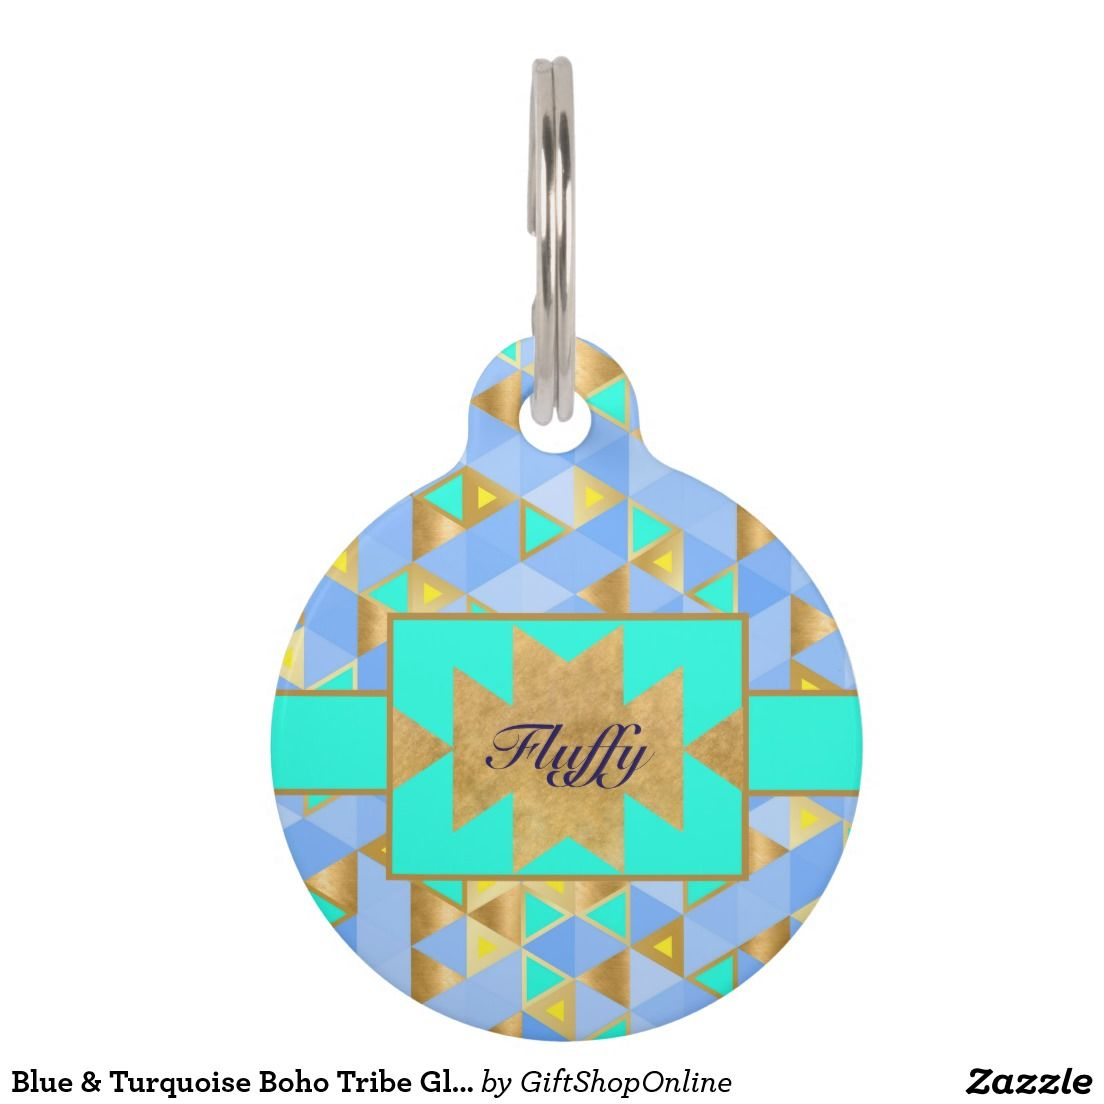 Blue & Turquoise Boho Tribe Glam Gold Monogrammed Pet ID Tag